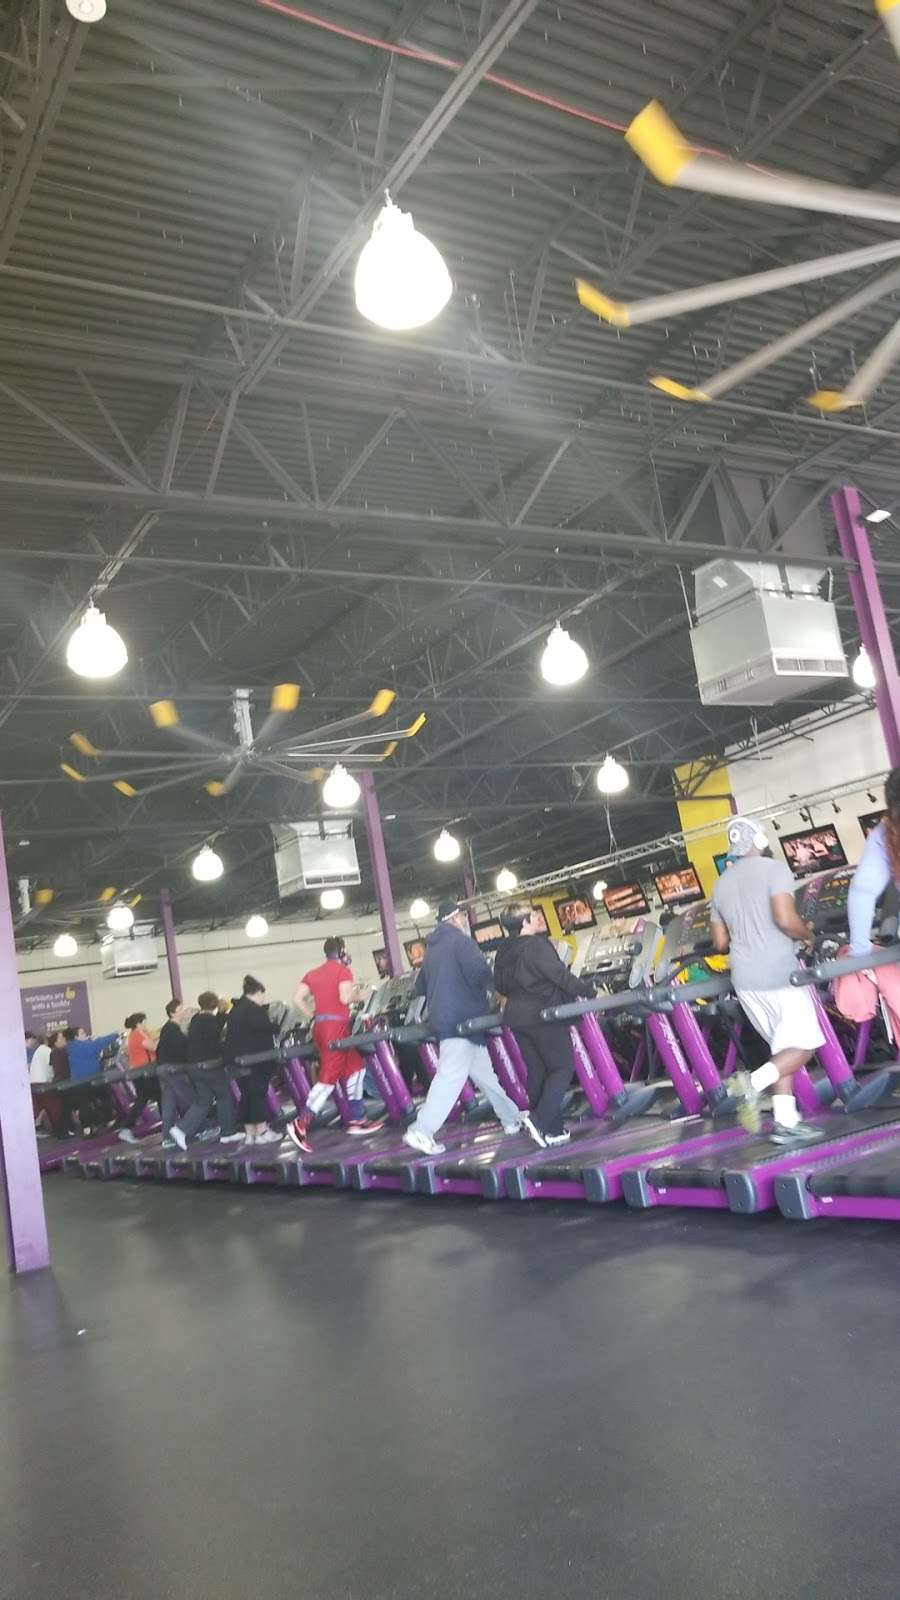 Planet Fitness, 2040 Forest Ave, Staten Island, NY (2020)